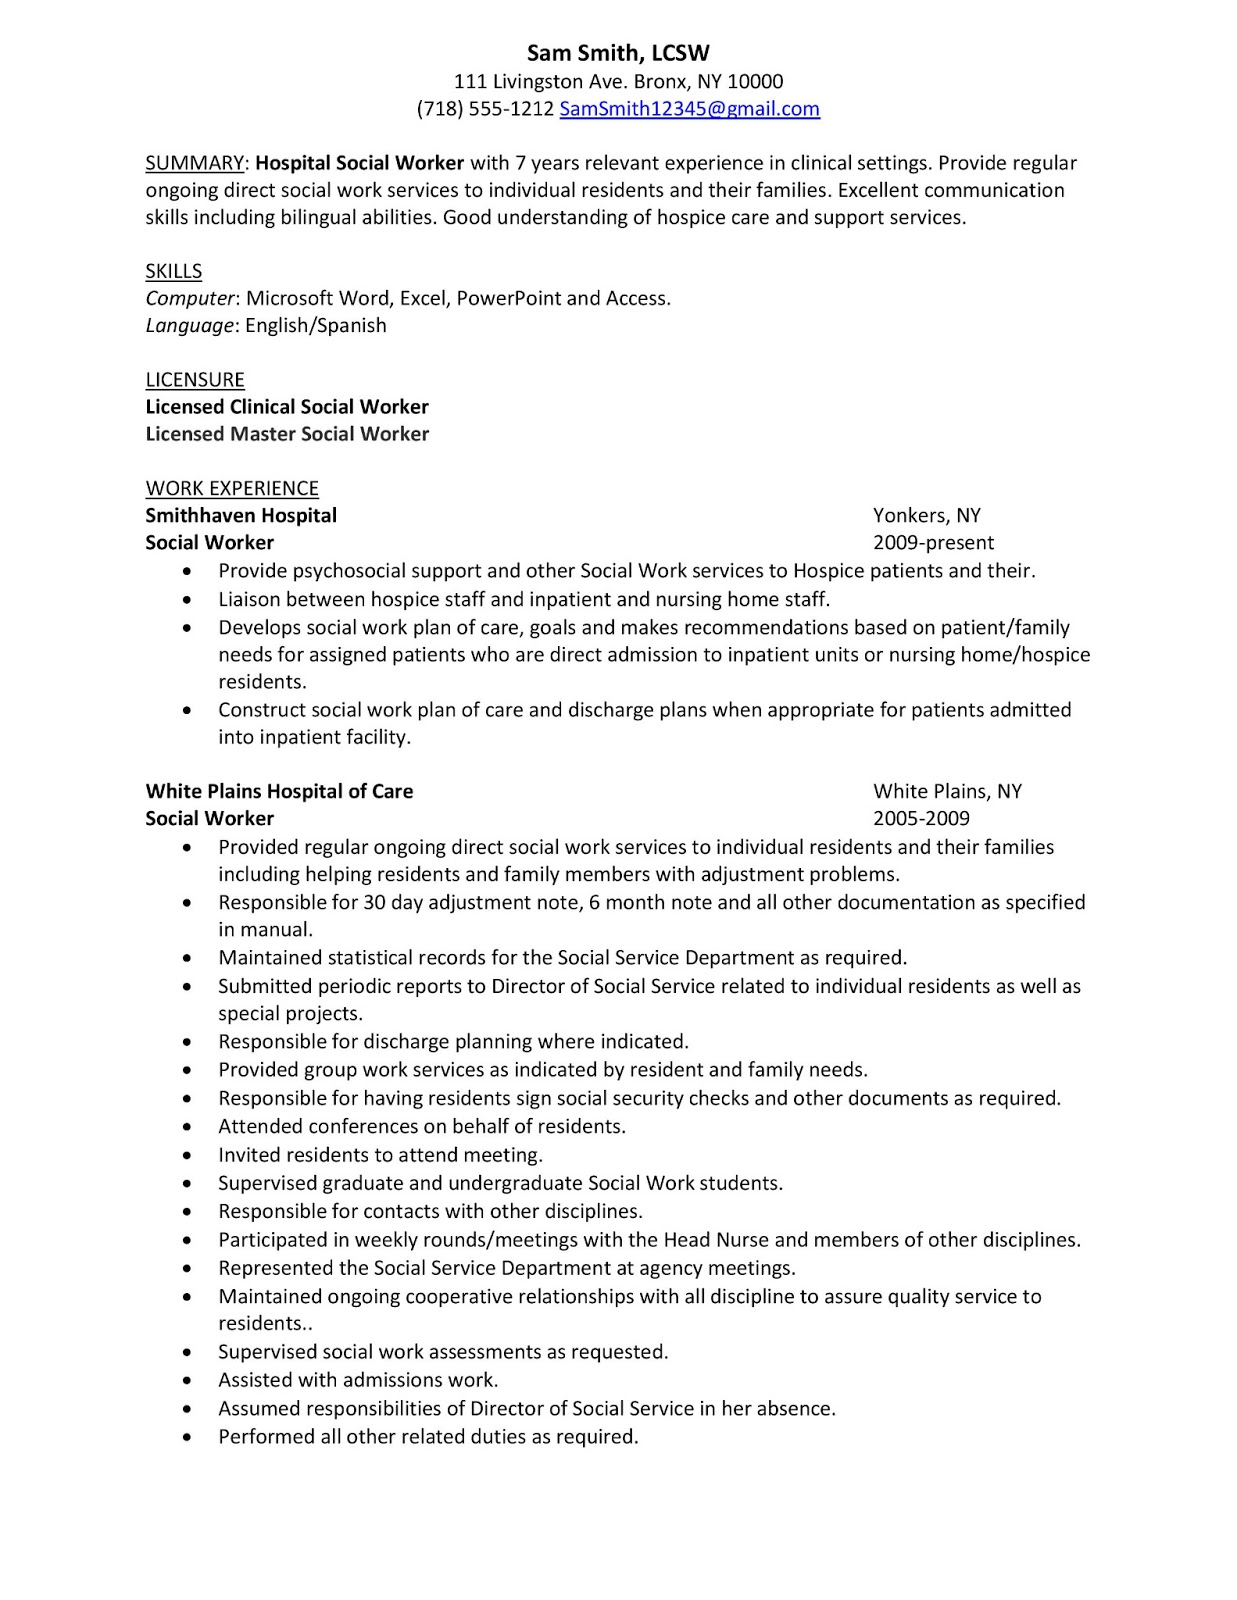 Resume Sample Resume Of Social Worker sample resume hospital social worker winning answers to 500 worker